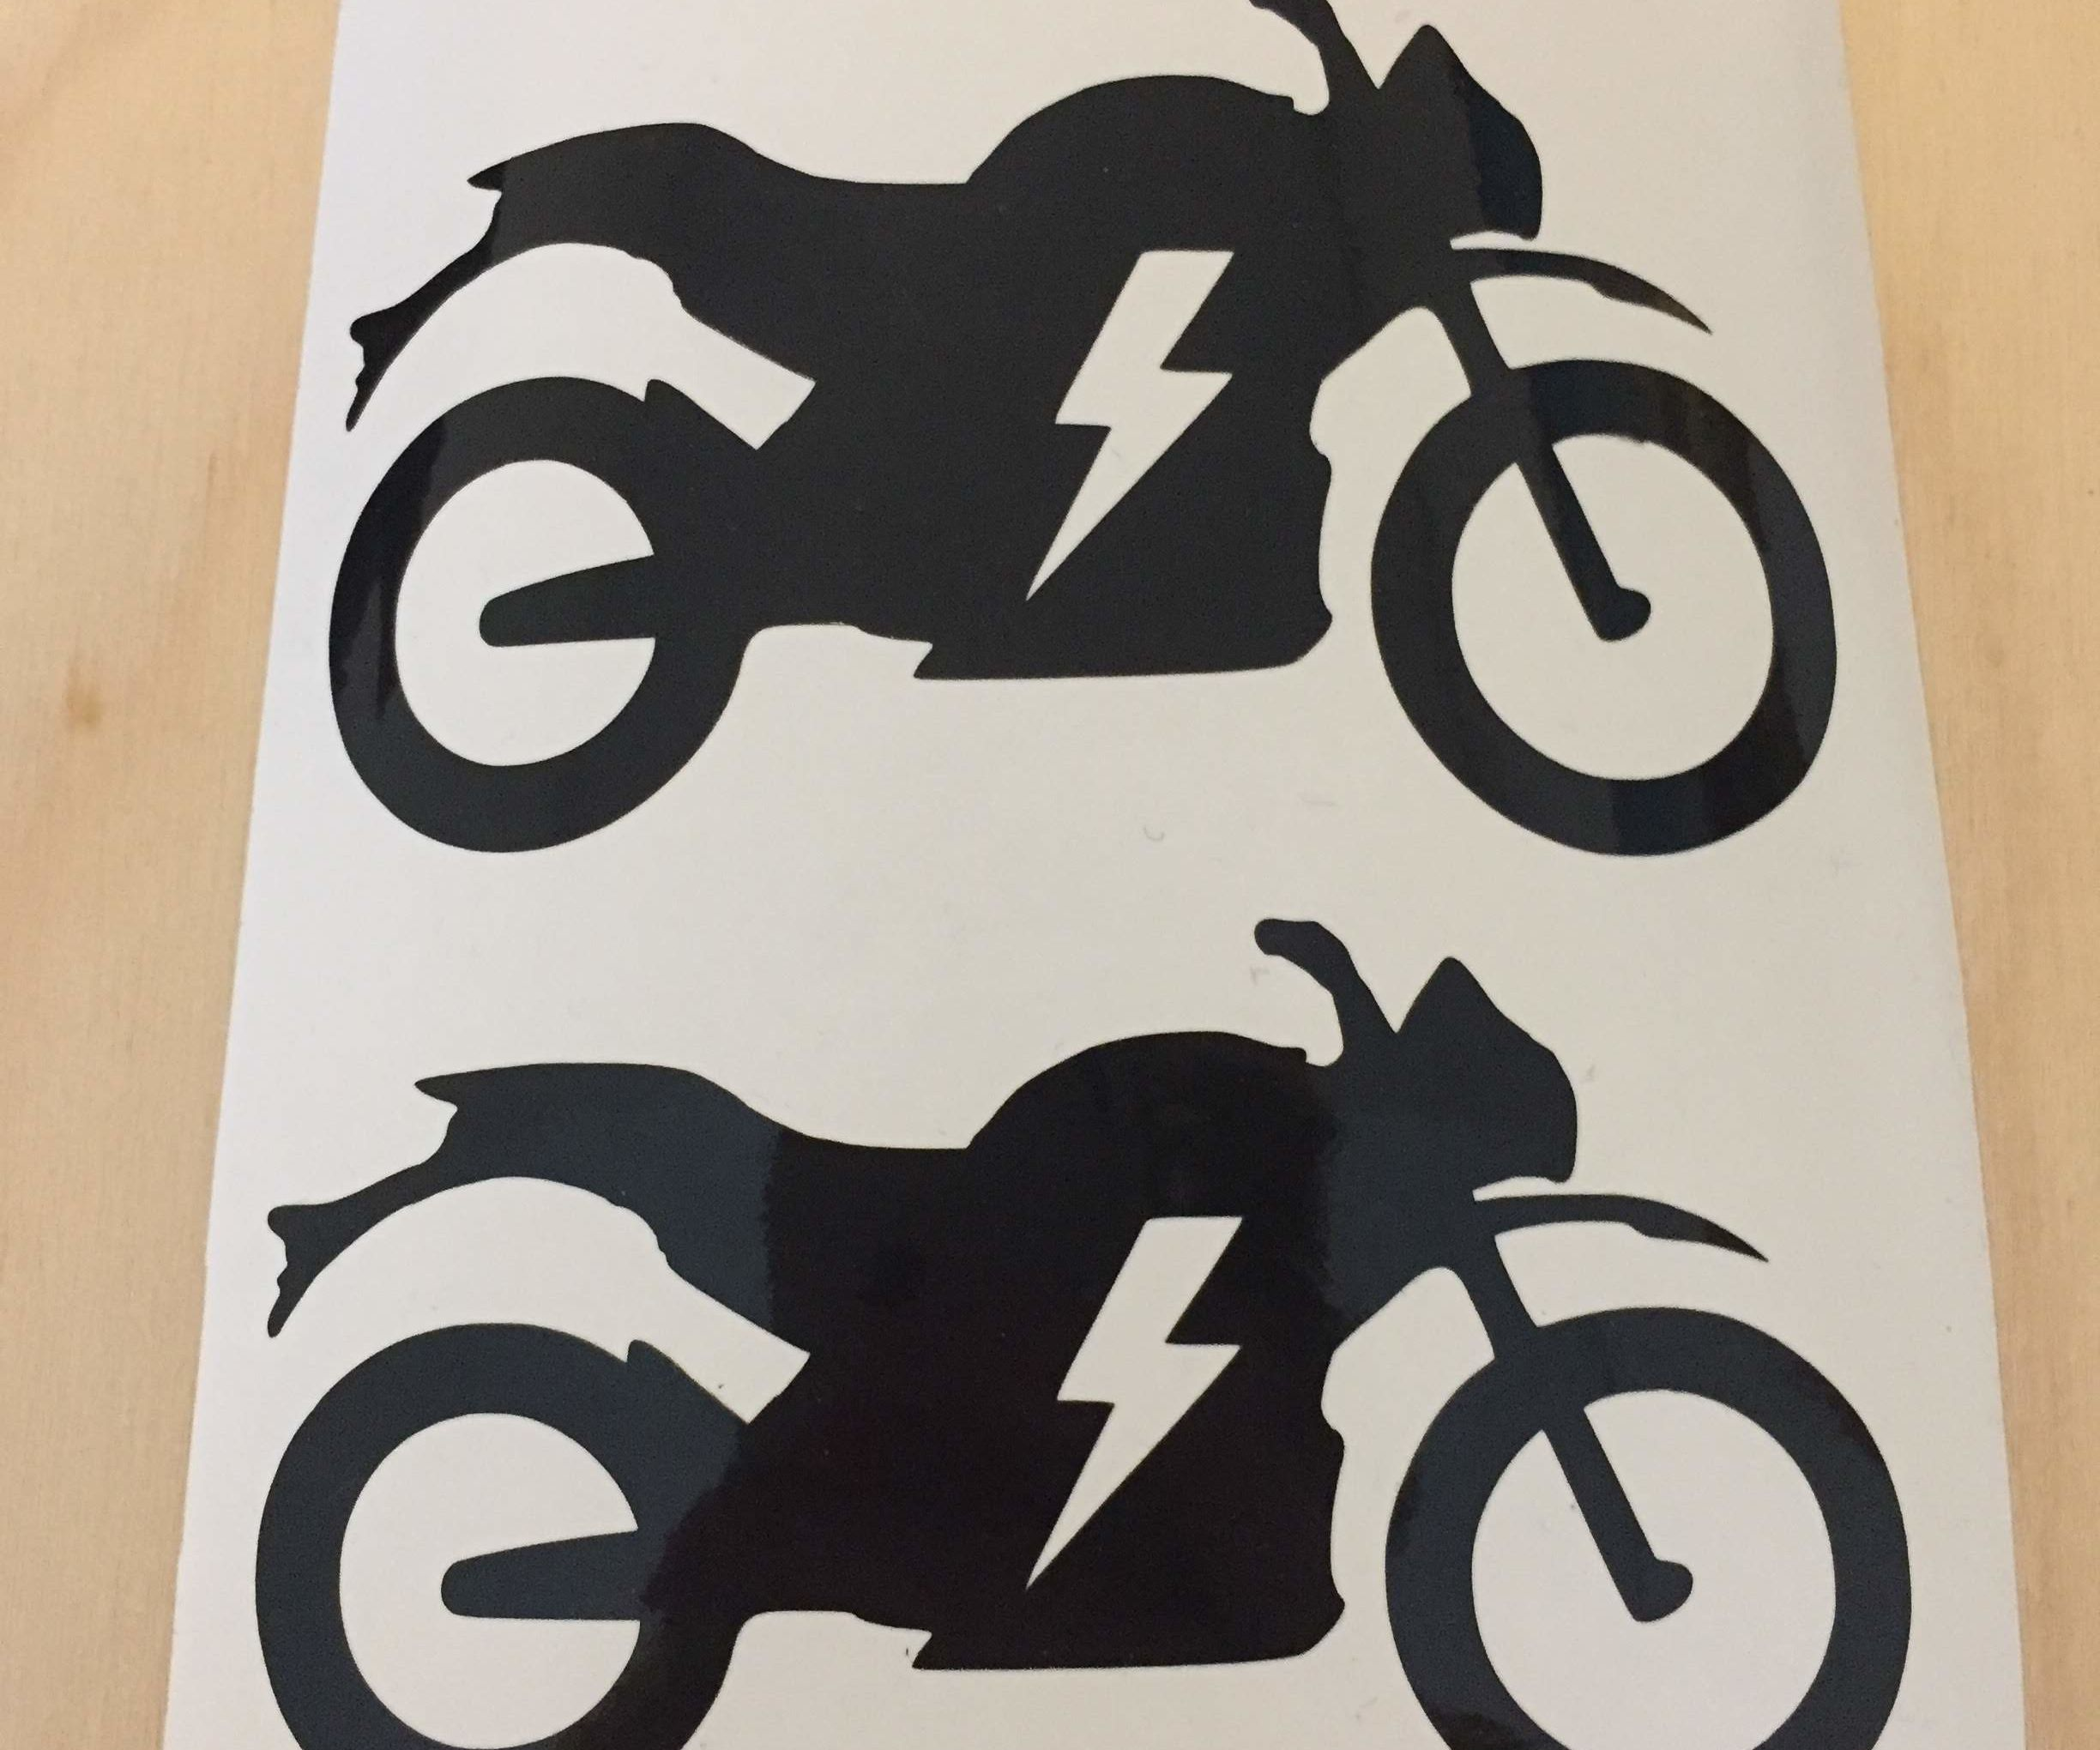 Electric Motorbike Sticker to Customize Ev Charging Sign